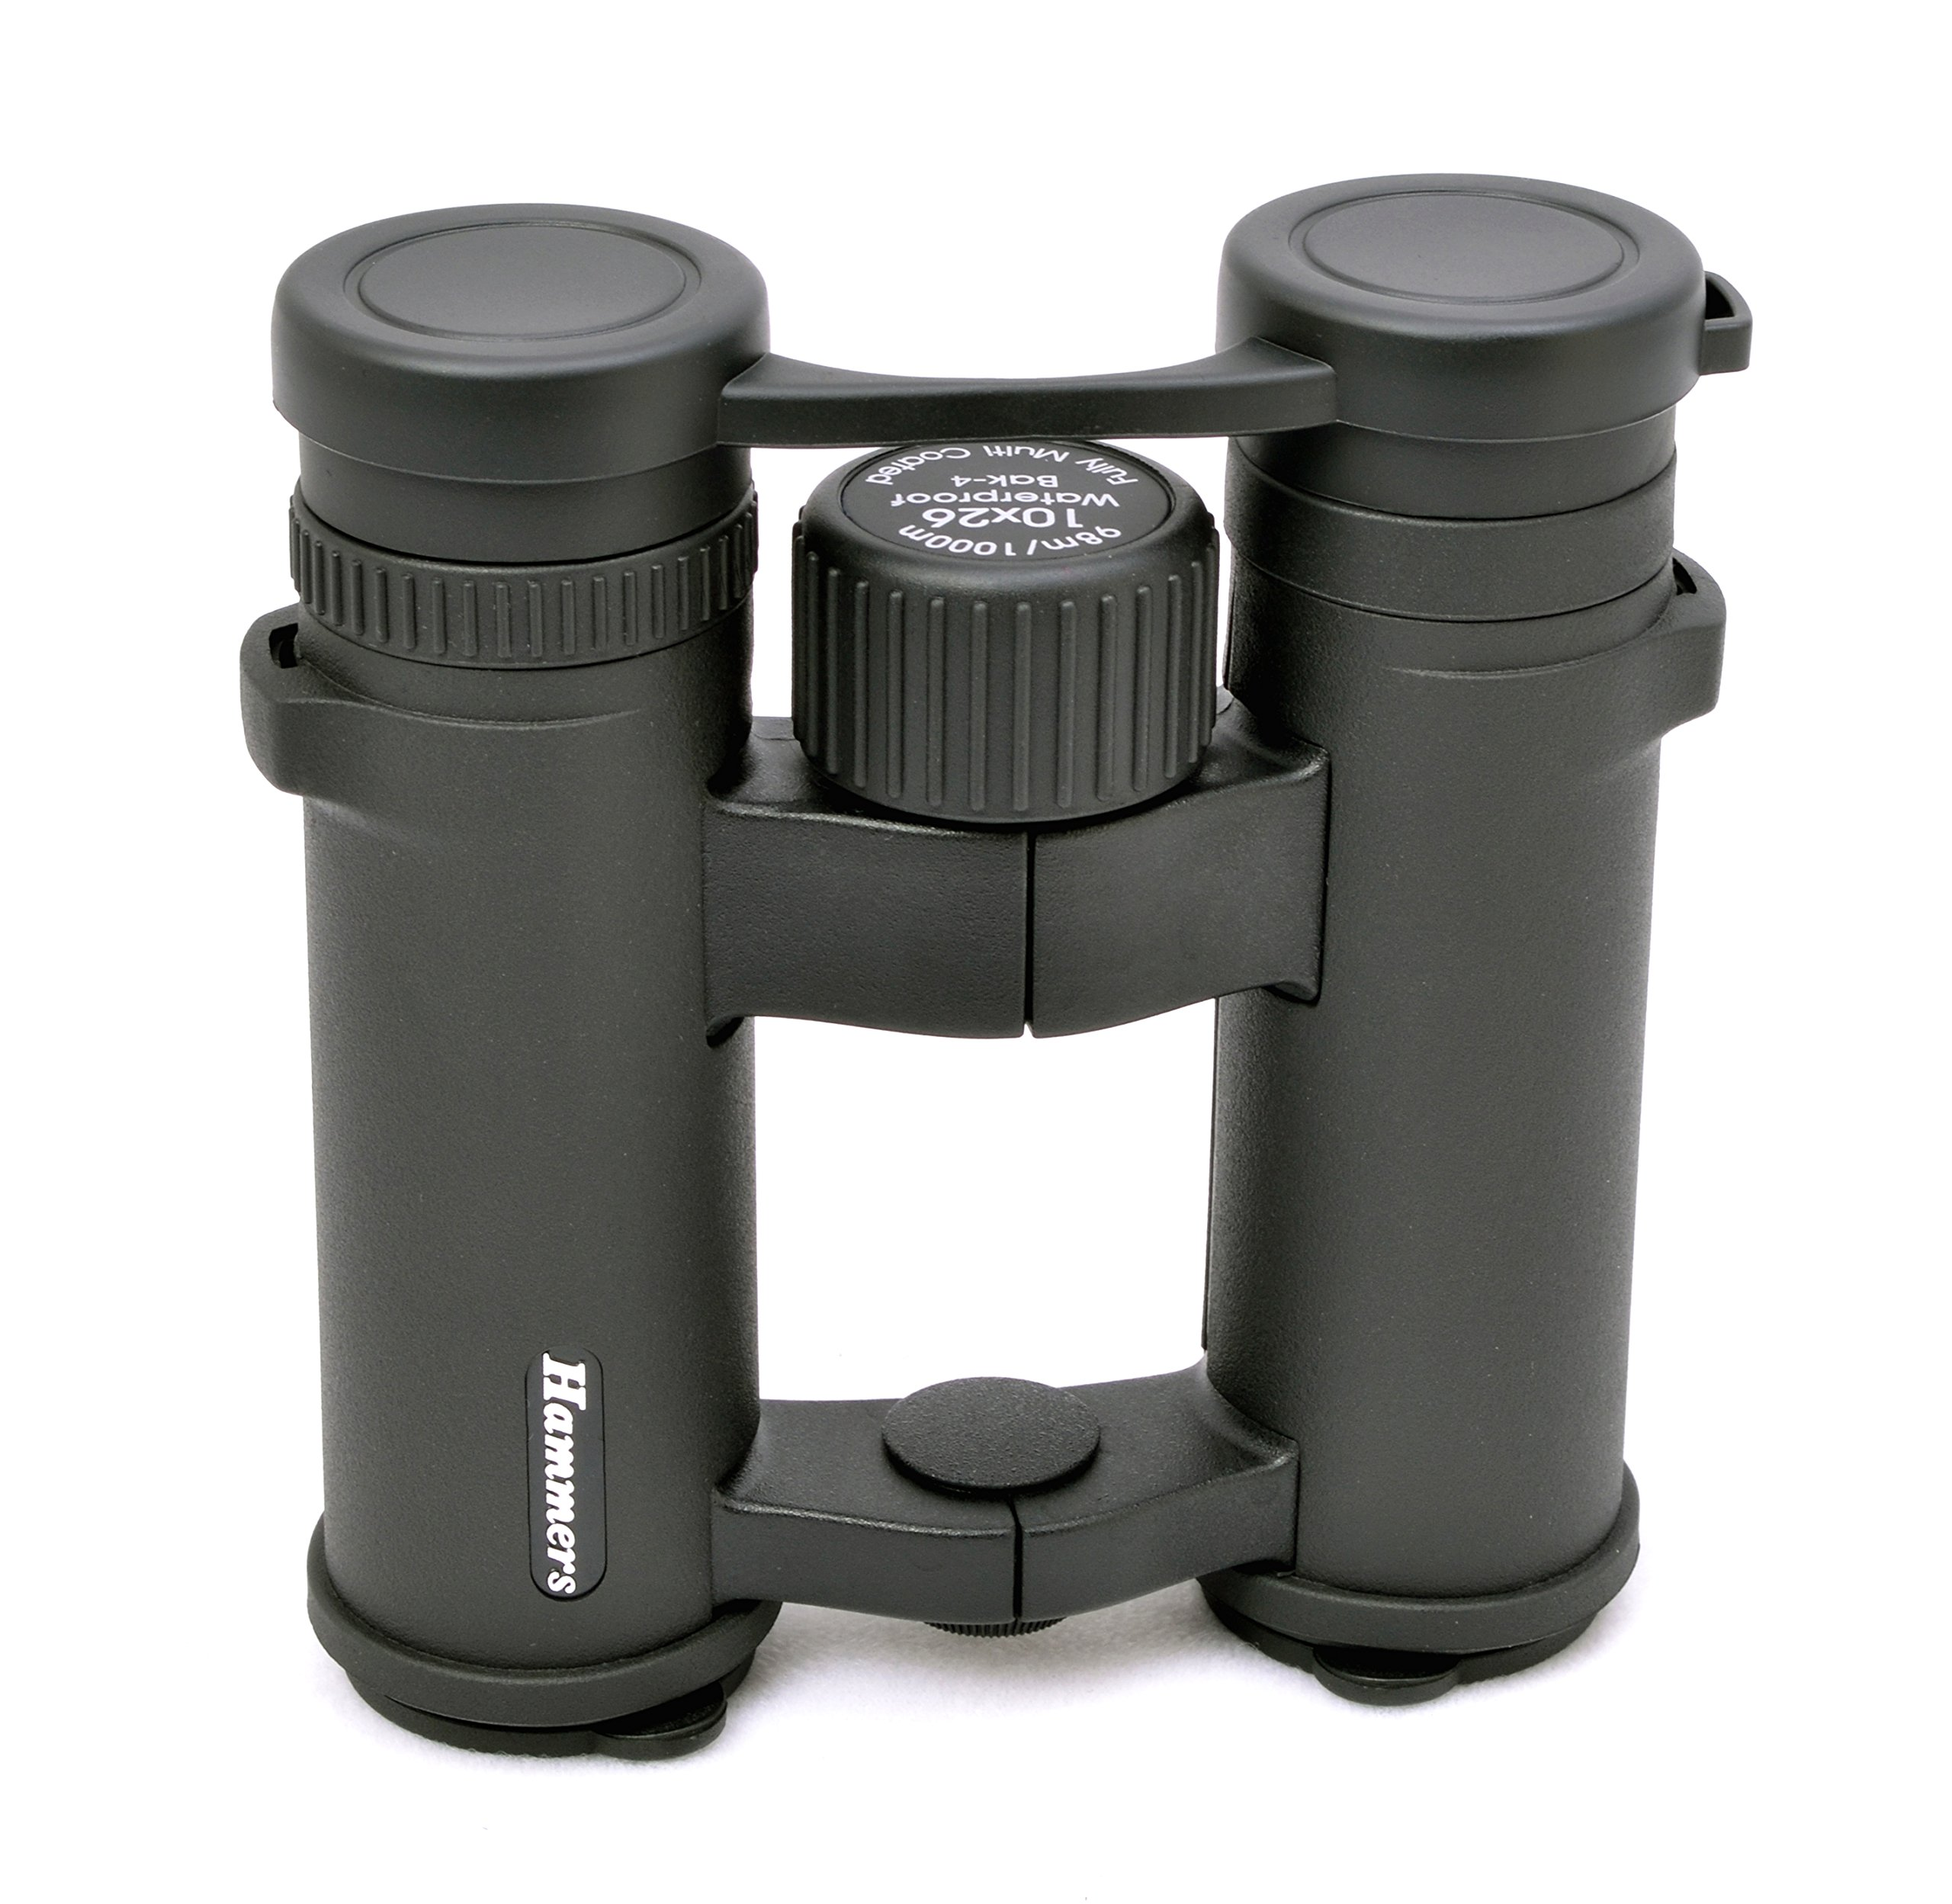 Hammers Elite Premium Quality Light Weight Birding Bird Whale Watching Compact Folding Roof Prism Waterproof Binocular 10x26 by Hammers